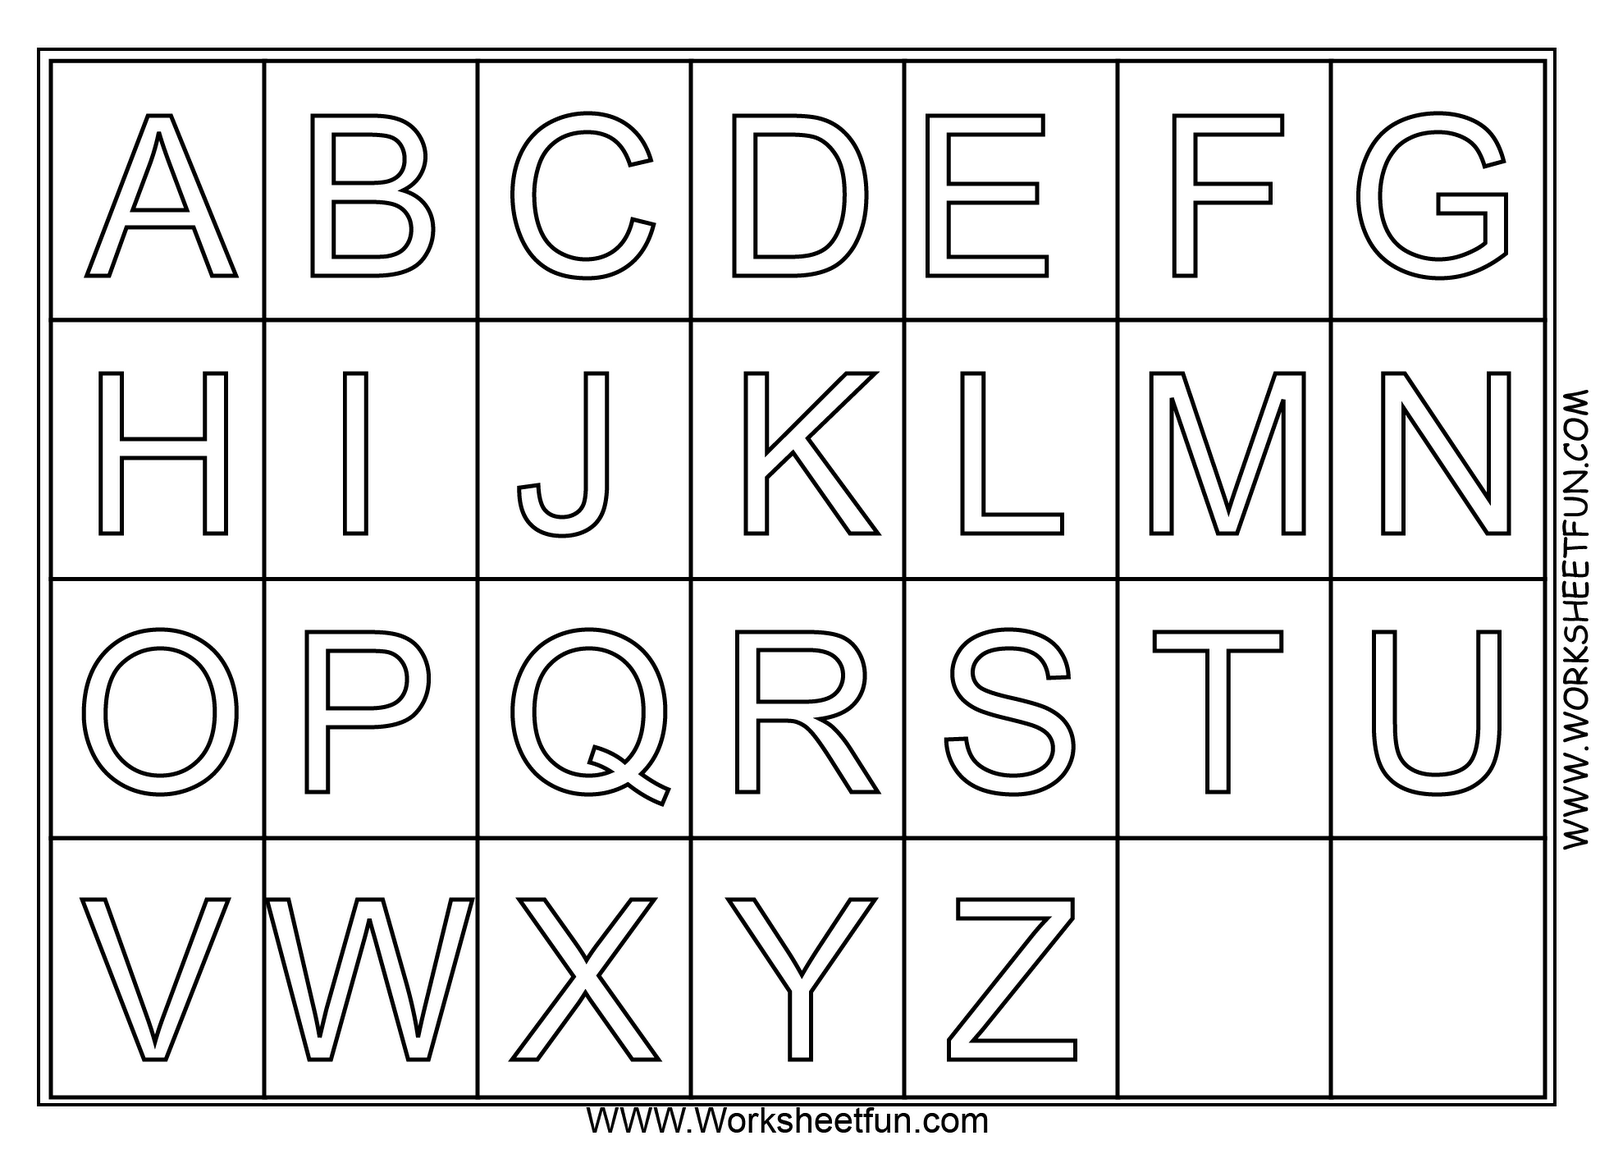 Worksheets Abc Worksheets For Pre-k a z alphabet coloring pages download and print for free pre k printable worksheets worksheetfun preschool kindergarten grade